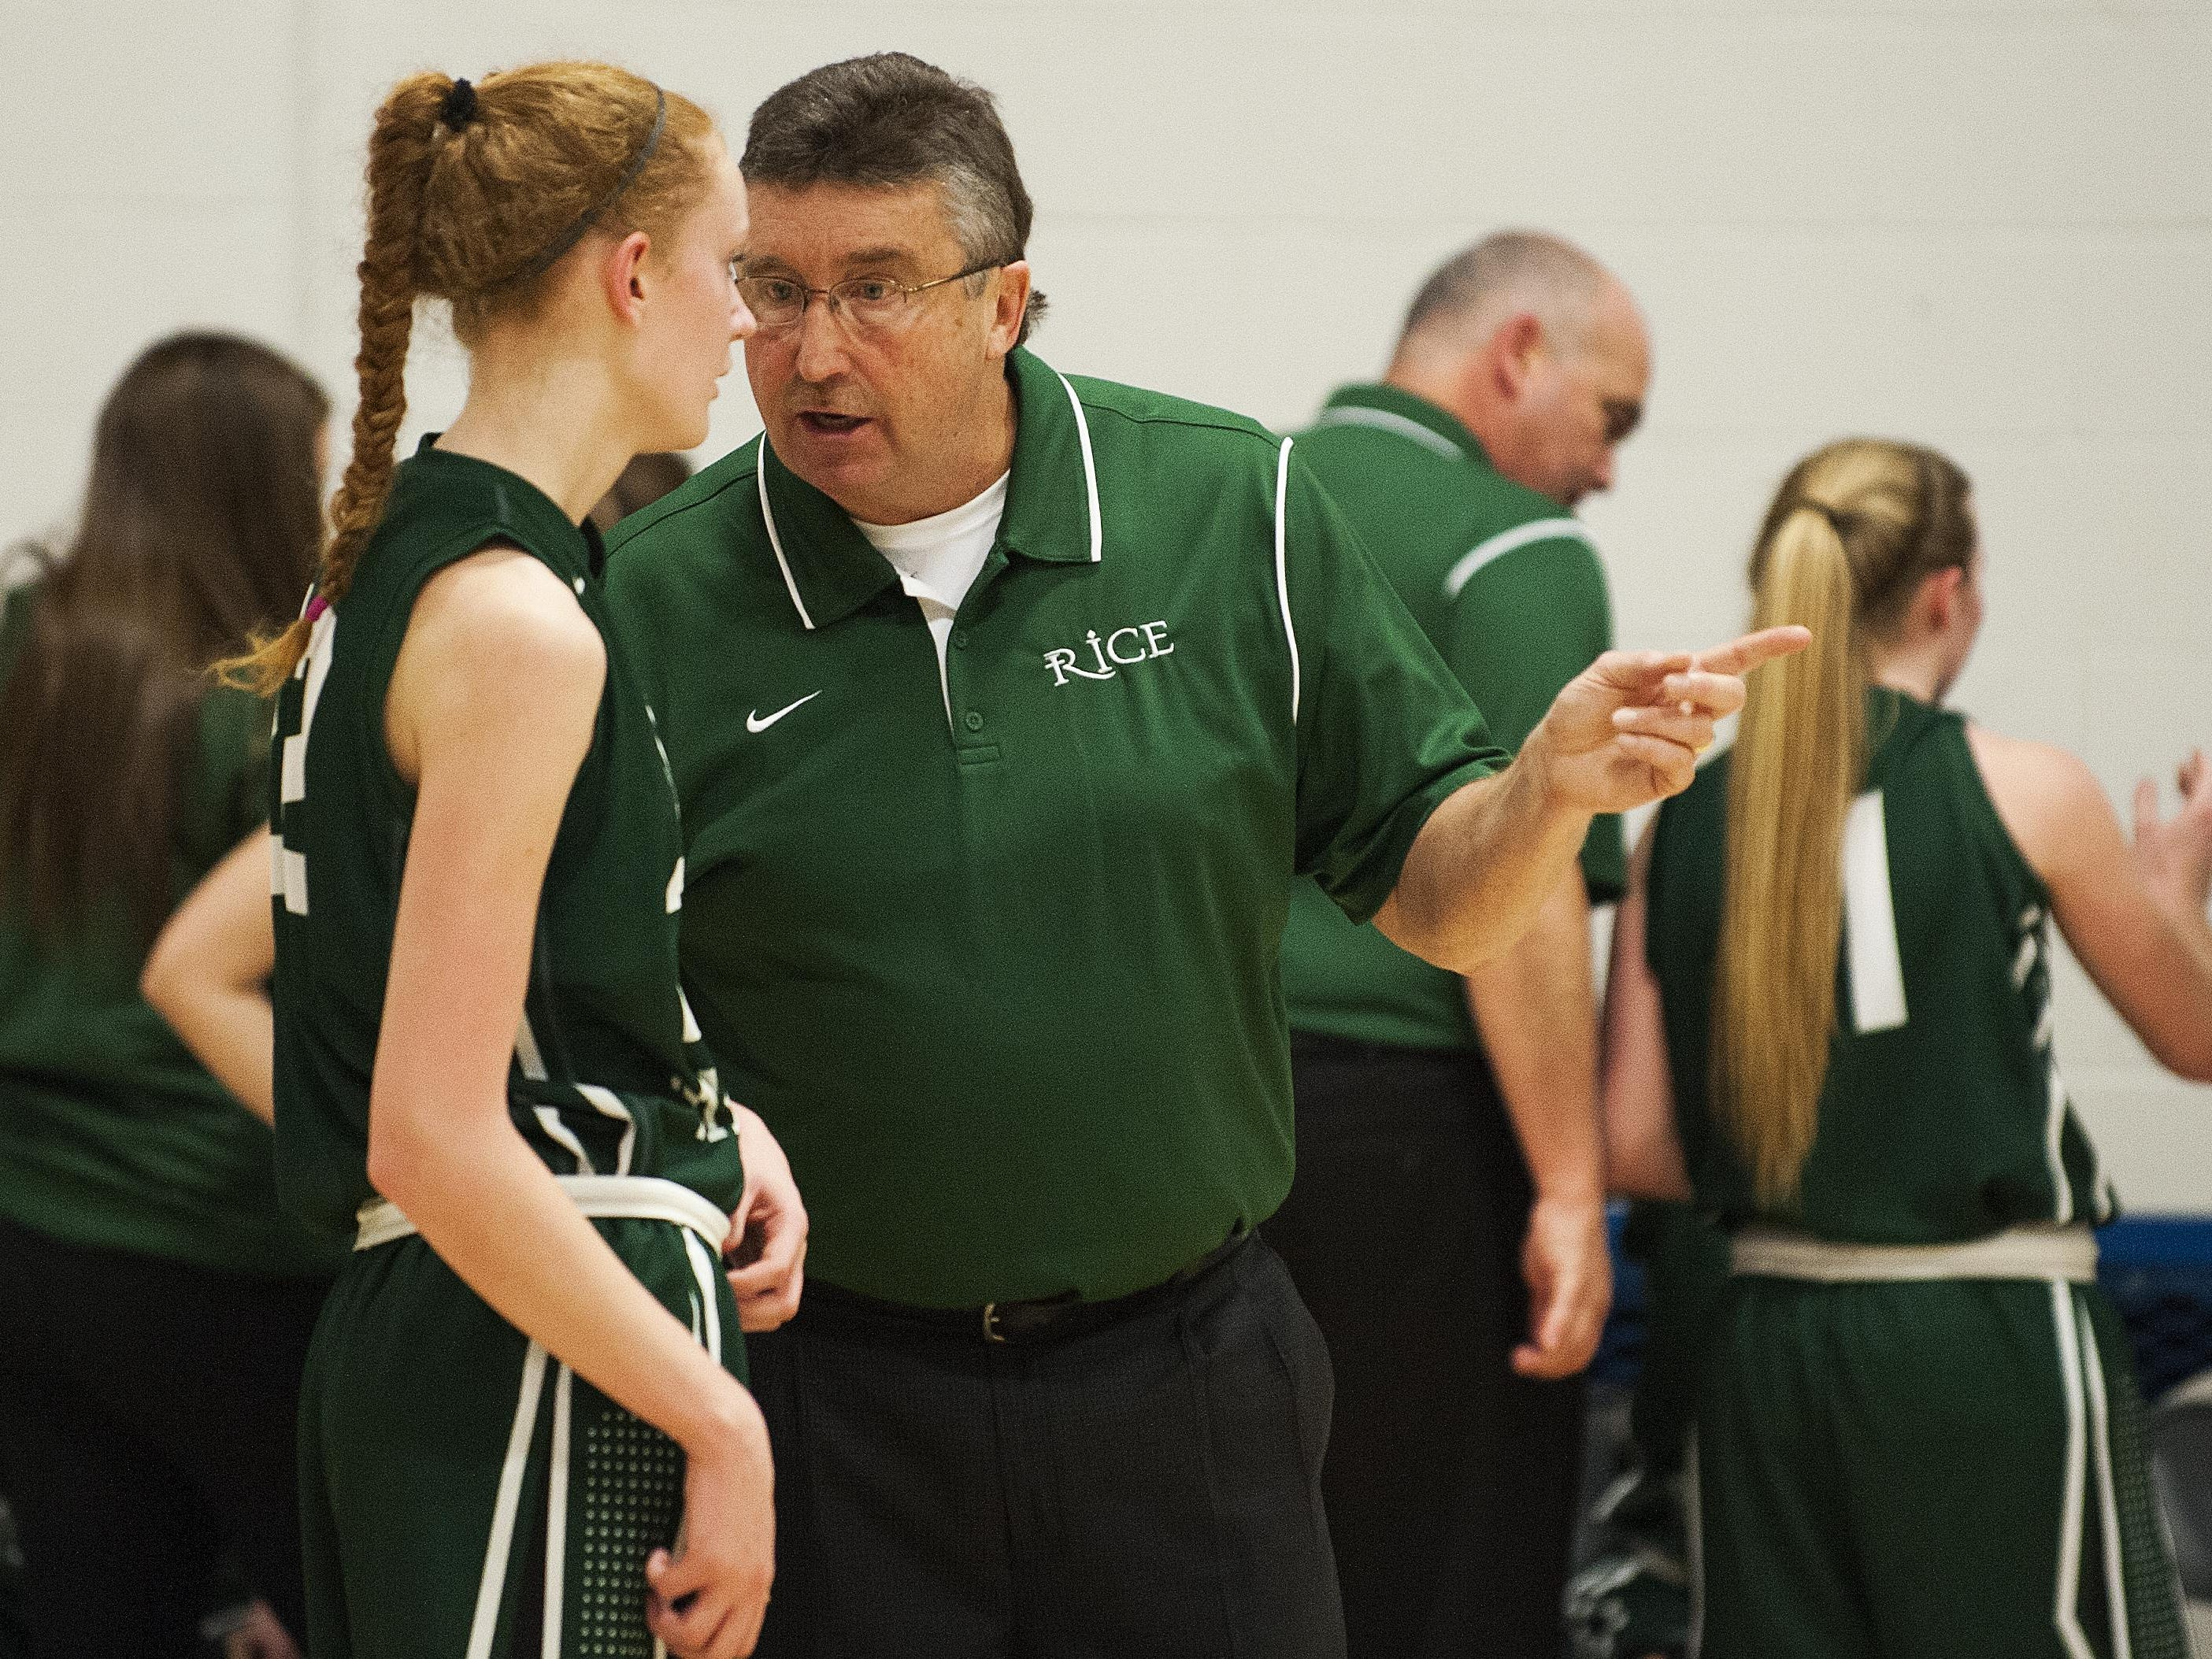 Rice head coach Tim Rice talks to Rice forward Lizzy Lyman (22) during the girls basketball game between the Rice Green knights and the Mount Mansfield Cougars at MMU High School on Friday night December 4, 2015 in Jericho.